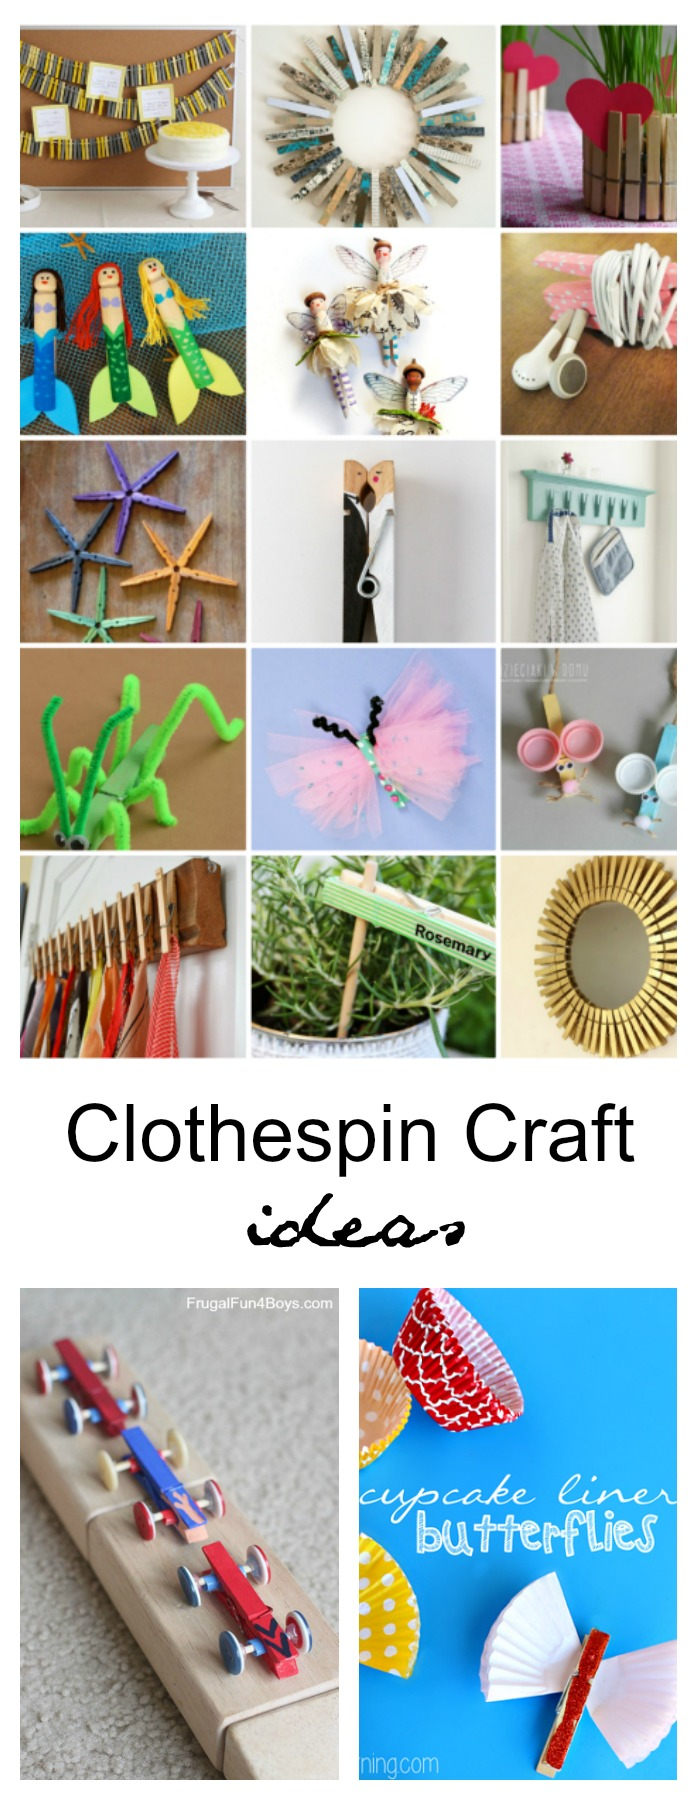 Clothespin-Craft-Ideas-Pin